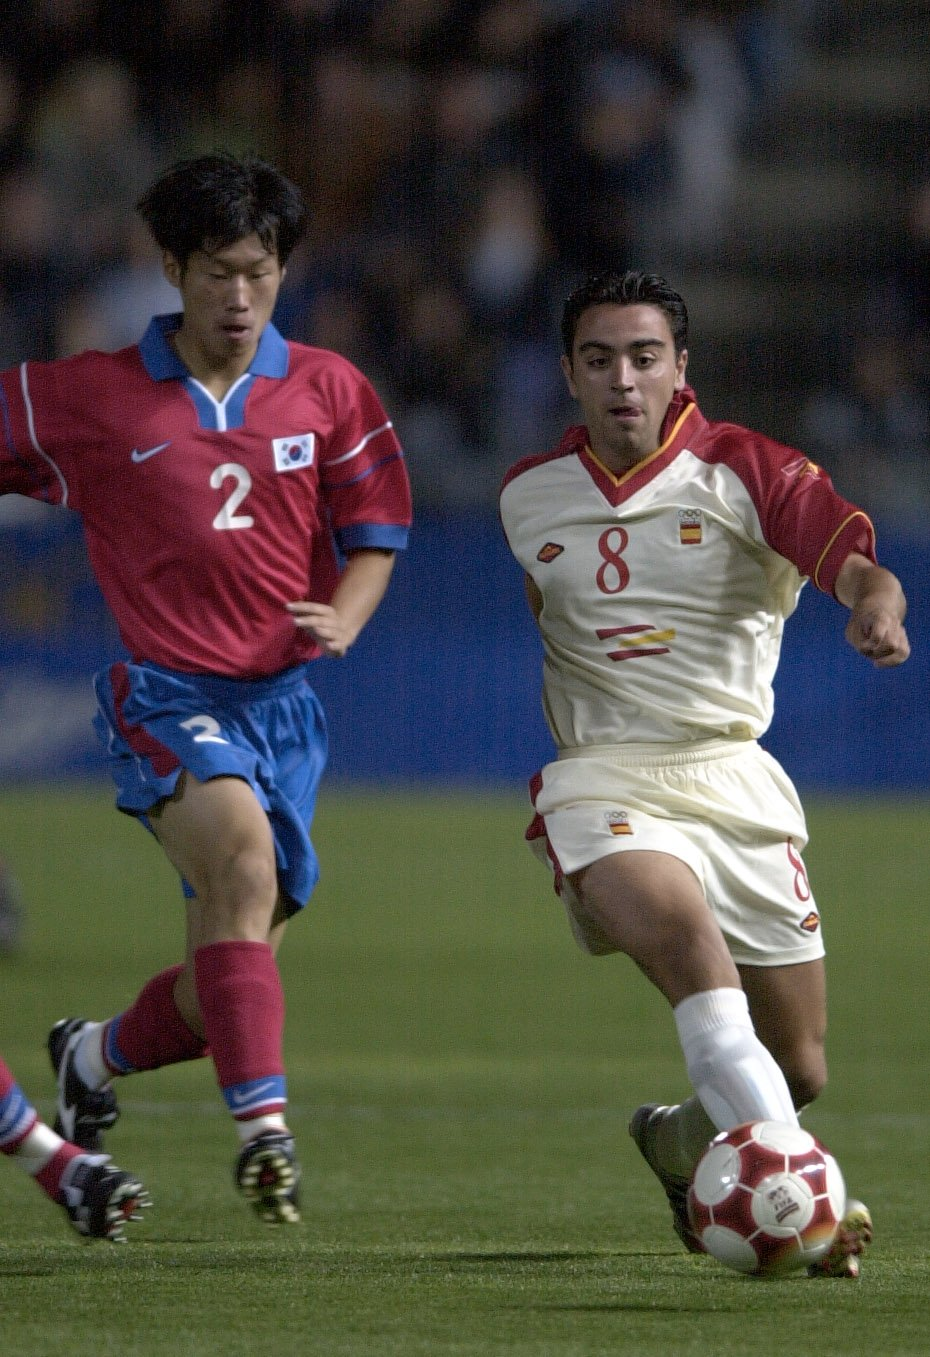 14 Sep 2000:  Park Ji Sung #2 for Korea chases down Xavi #8 for Spain during the Mens Prelimanary Olympic Soccer match between Spain and Korea at the Hindmarsh Stadium, Adelaide, Australia. Spain defeated Korea 3-0.    DIGITAL IMAGE. Mandatory Credit: Robert Cianflone/ALLSPORT